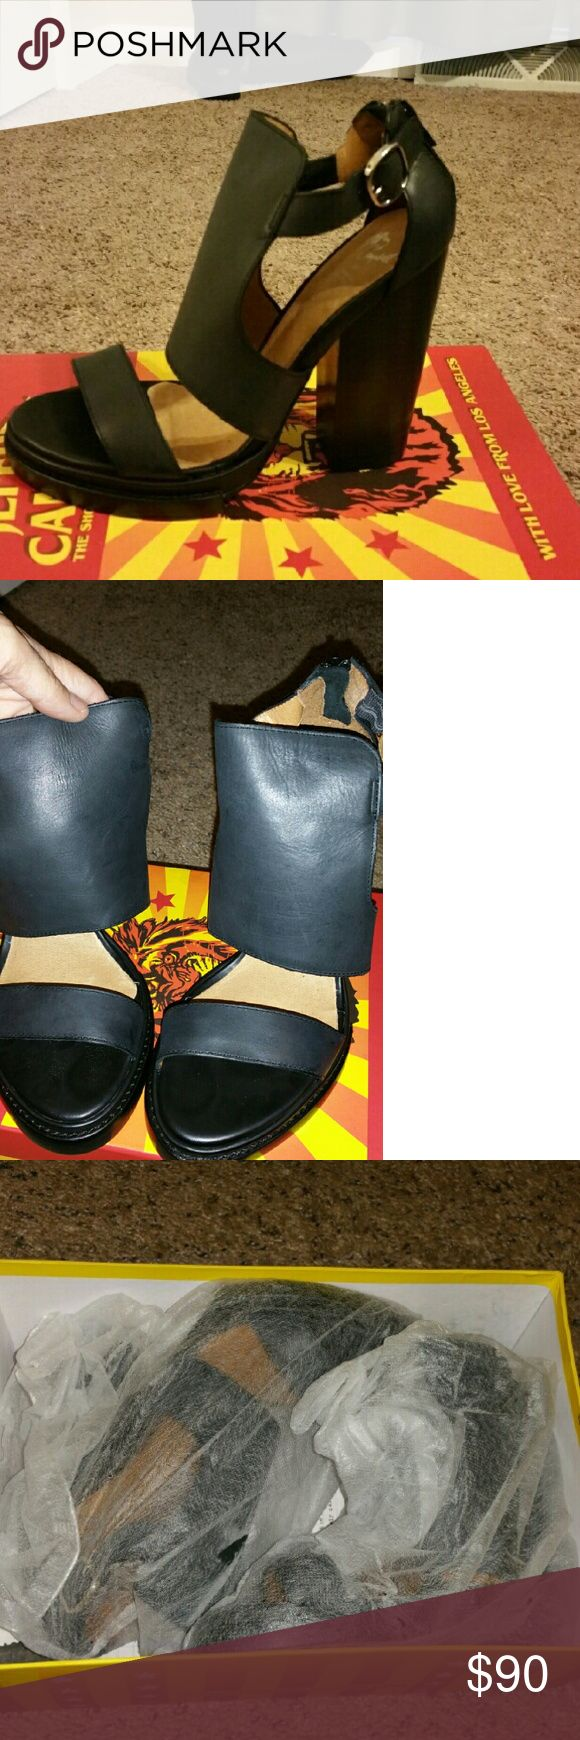 Jeffrey Campbell sandals Black Jeffrey Campbell leather platform sandals.  Size 8.  Brand new.  Bought from another Posher and just never got around to wearing them. Jeffrey Campbell Shoes Sandals